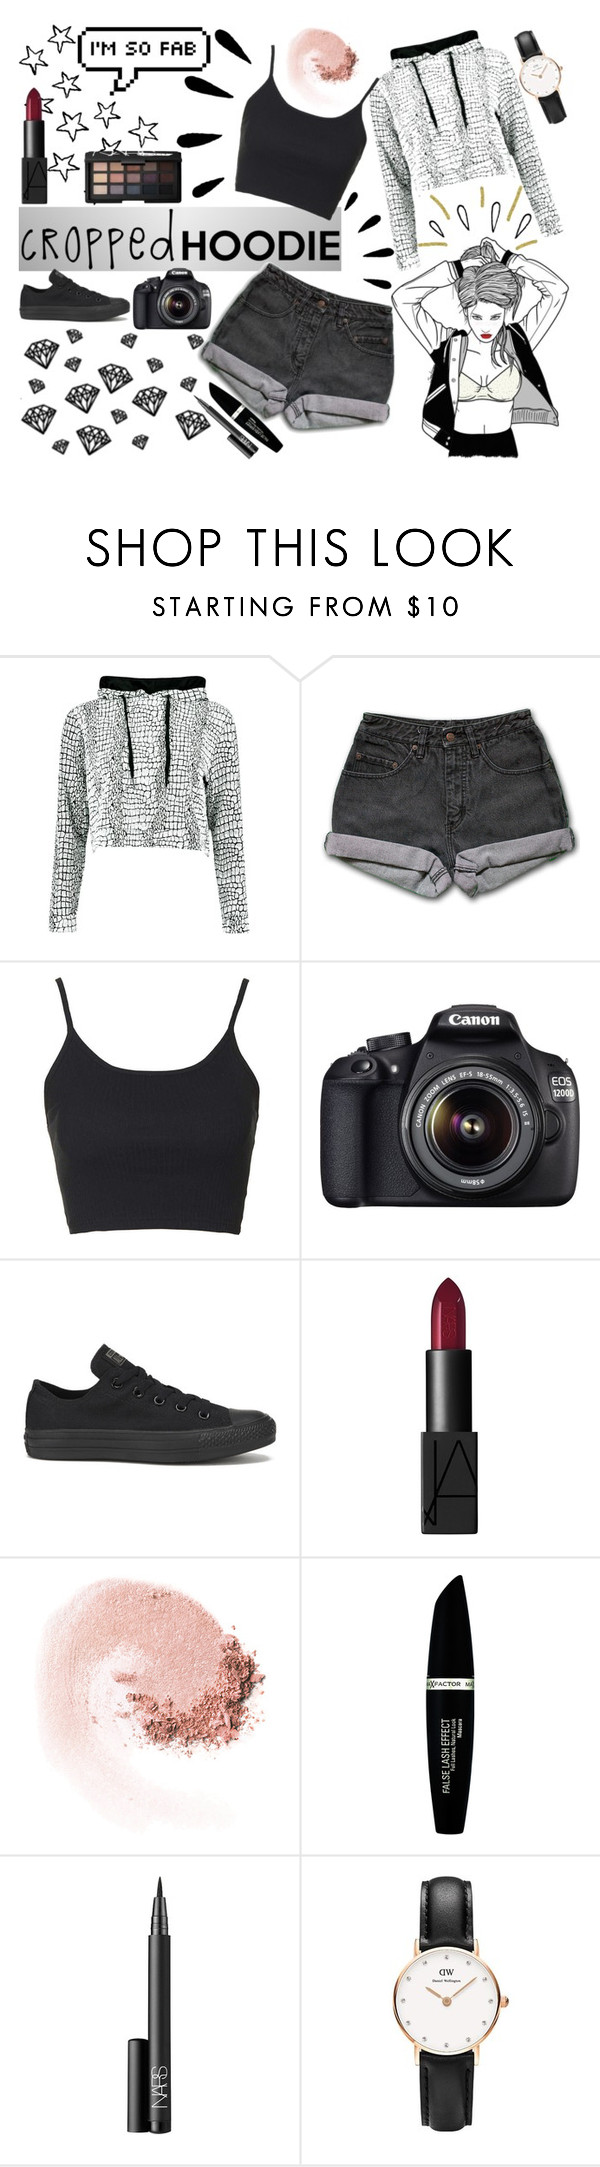 """""""Cropped Hoodie ; Black&White"""" by grierdallas ❤ liked on Polyvore featuring PèPè, Topshop, Old Navy, Canon, Converse, NARS Cosmetics, Max Factor and Daniel Wellington"""